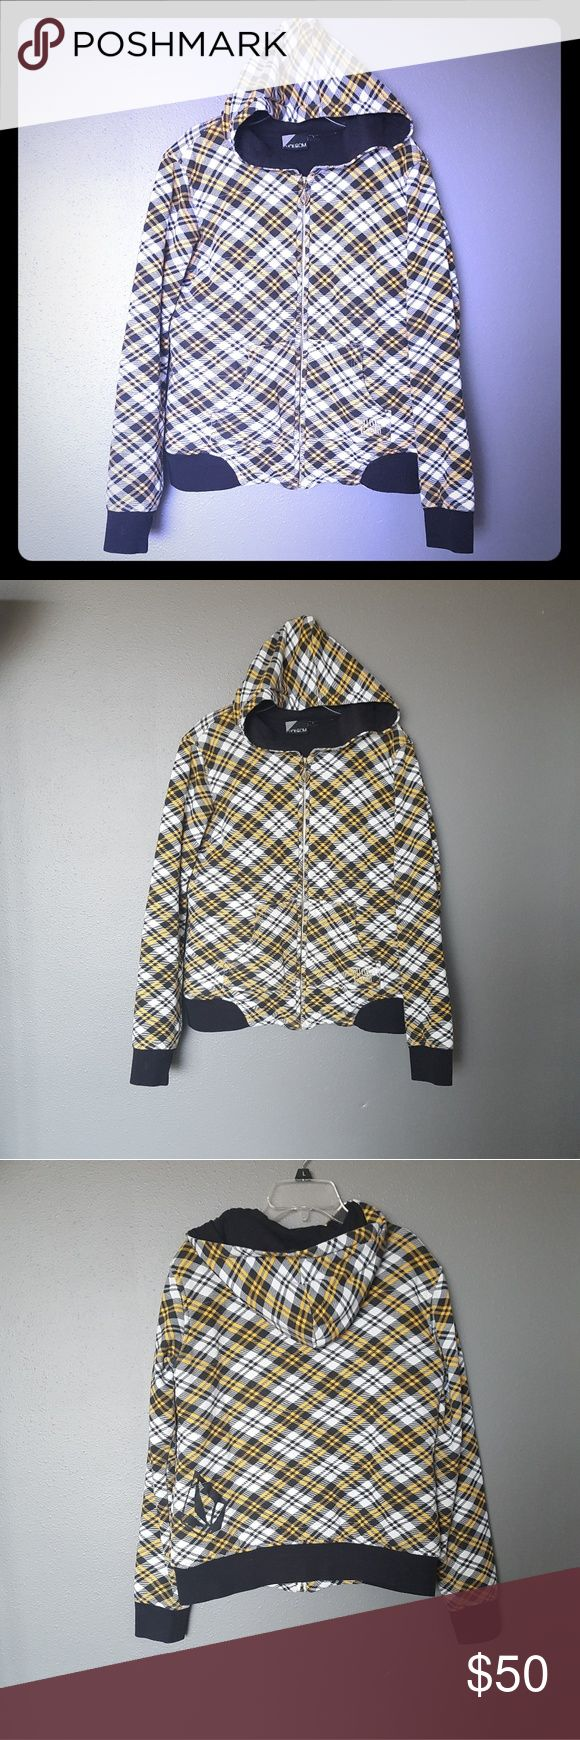 《Volcom》Lumber Jacket Fleece Zip Hoodie Excellent condition. Like new. Volcom brand. Lumber jacket fleece zip hooded sweat shirt. Size medium. 80% cotton 20% polyester.   Black, yellow, and white angled plaid pattern. Gold seams and zipper. Volcom logo on the lower back of the jacket, the zipper, and one of the front pockets. The lining is black. Slick.  Smoke and pet free home. Reasonable* offers considered. Volcom Shirts Sweatshirts & Hoodies